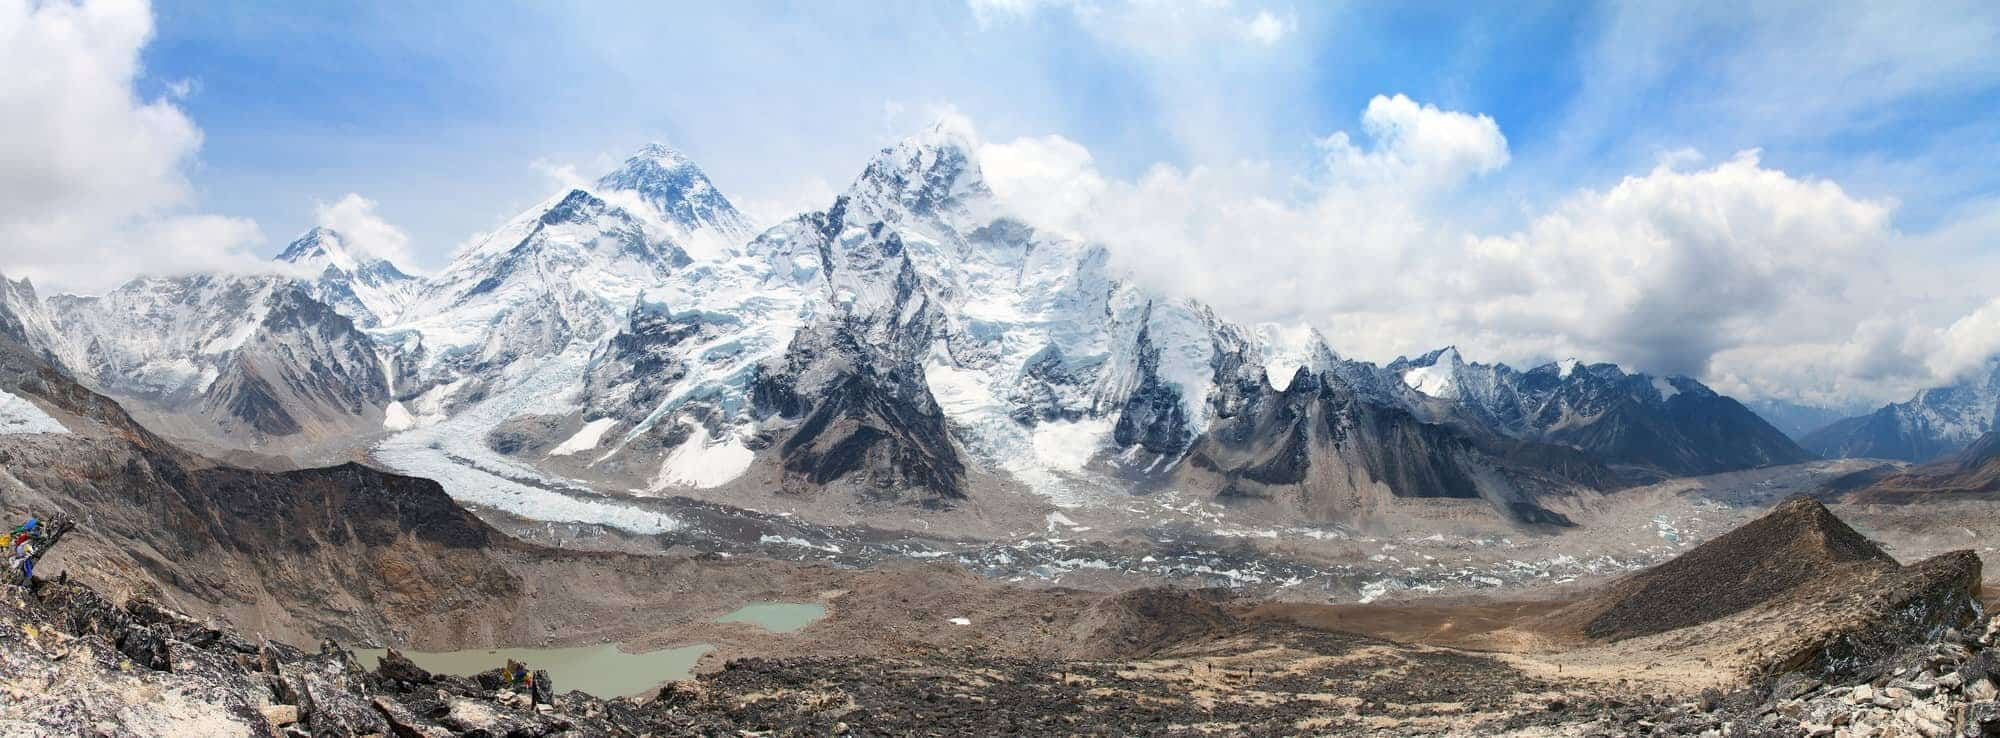 panoramic view of Mount Everest with beautiful sky and Khumbu Glacier - way to Everest base camp, Khumbu valley, Sagarmatha national park, Nepal. Biggest mountains in asia